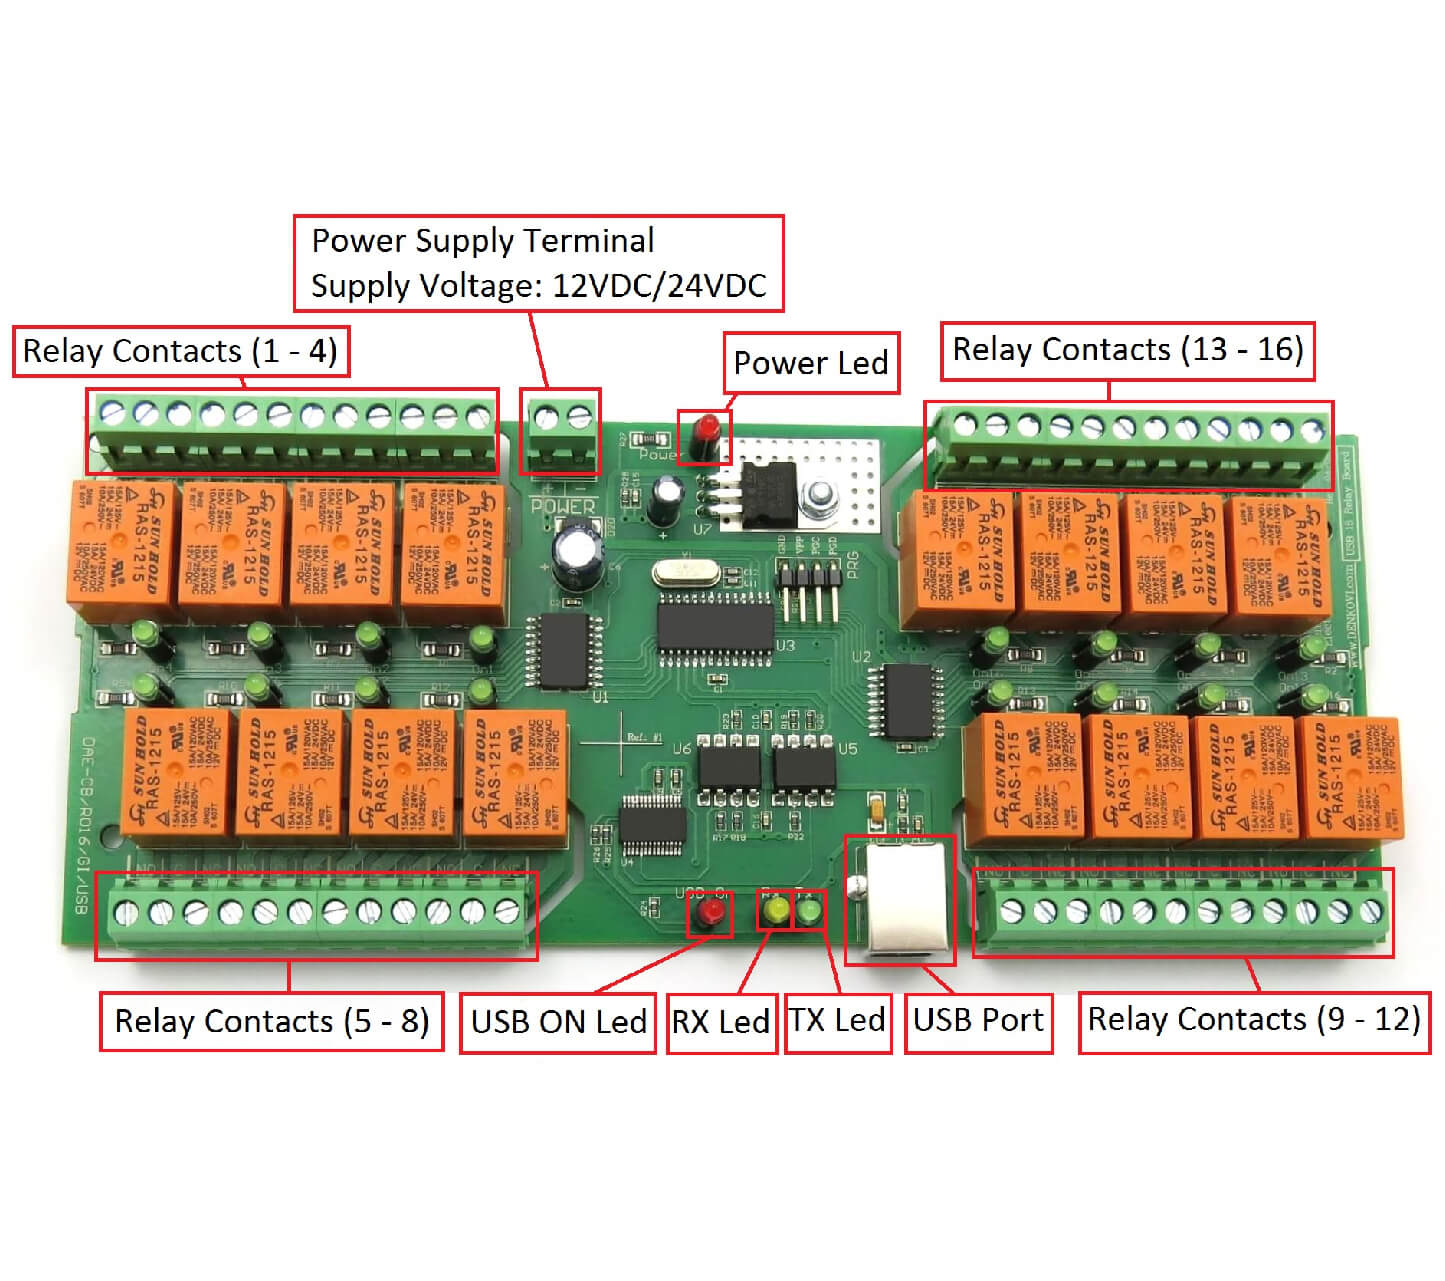 USB 16 Relay Module - overview